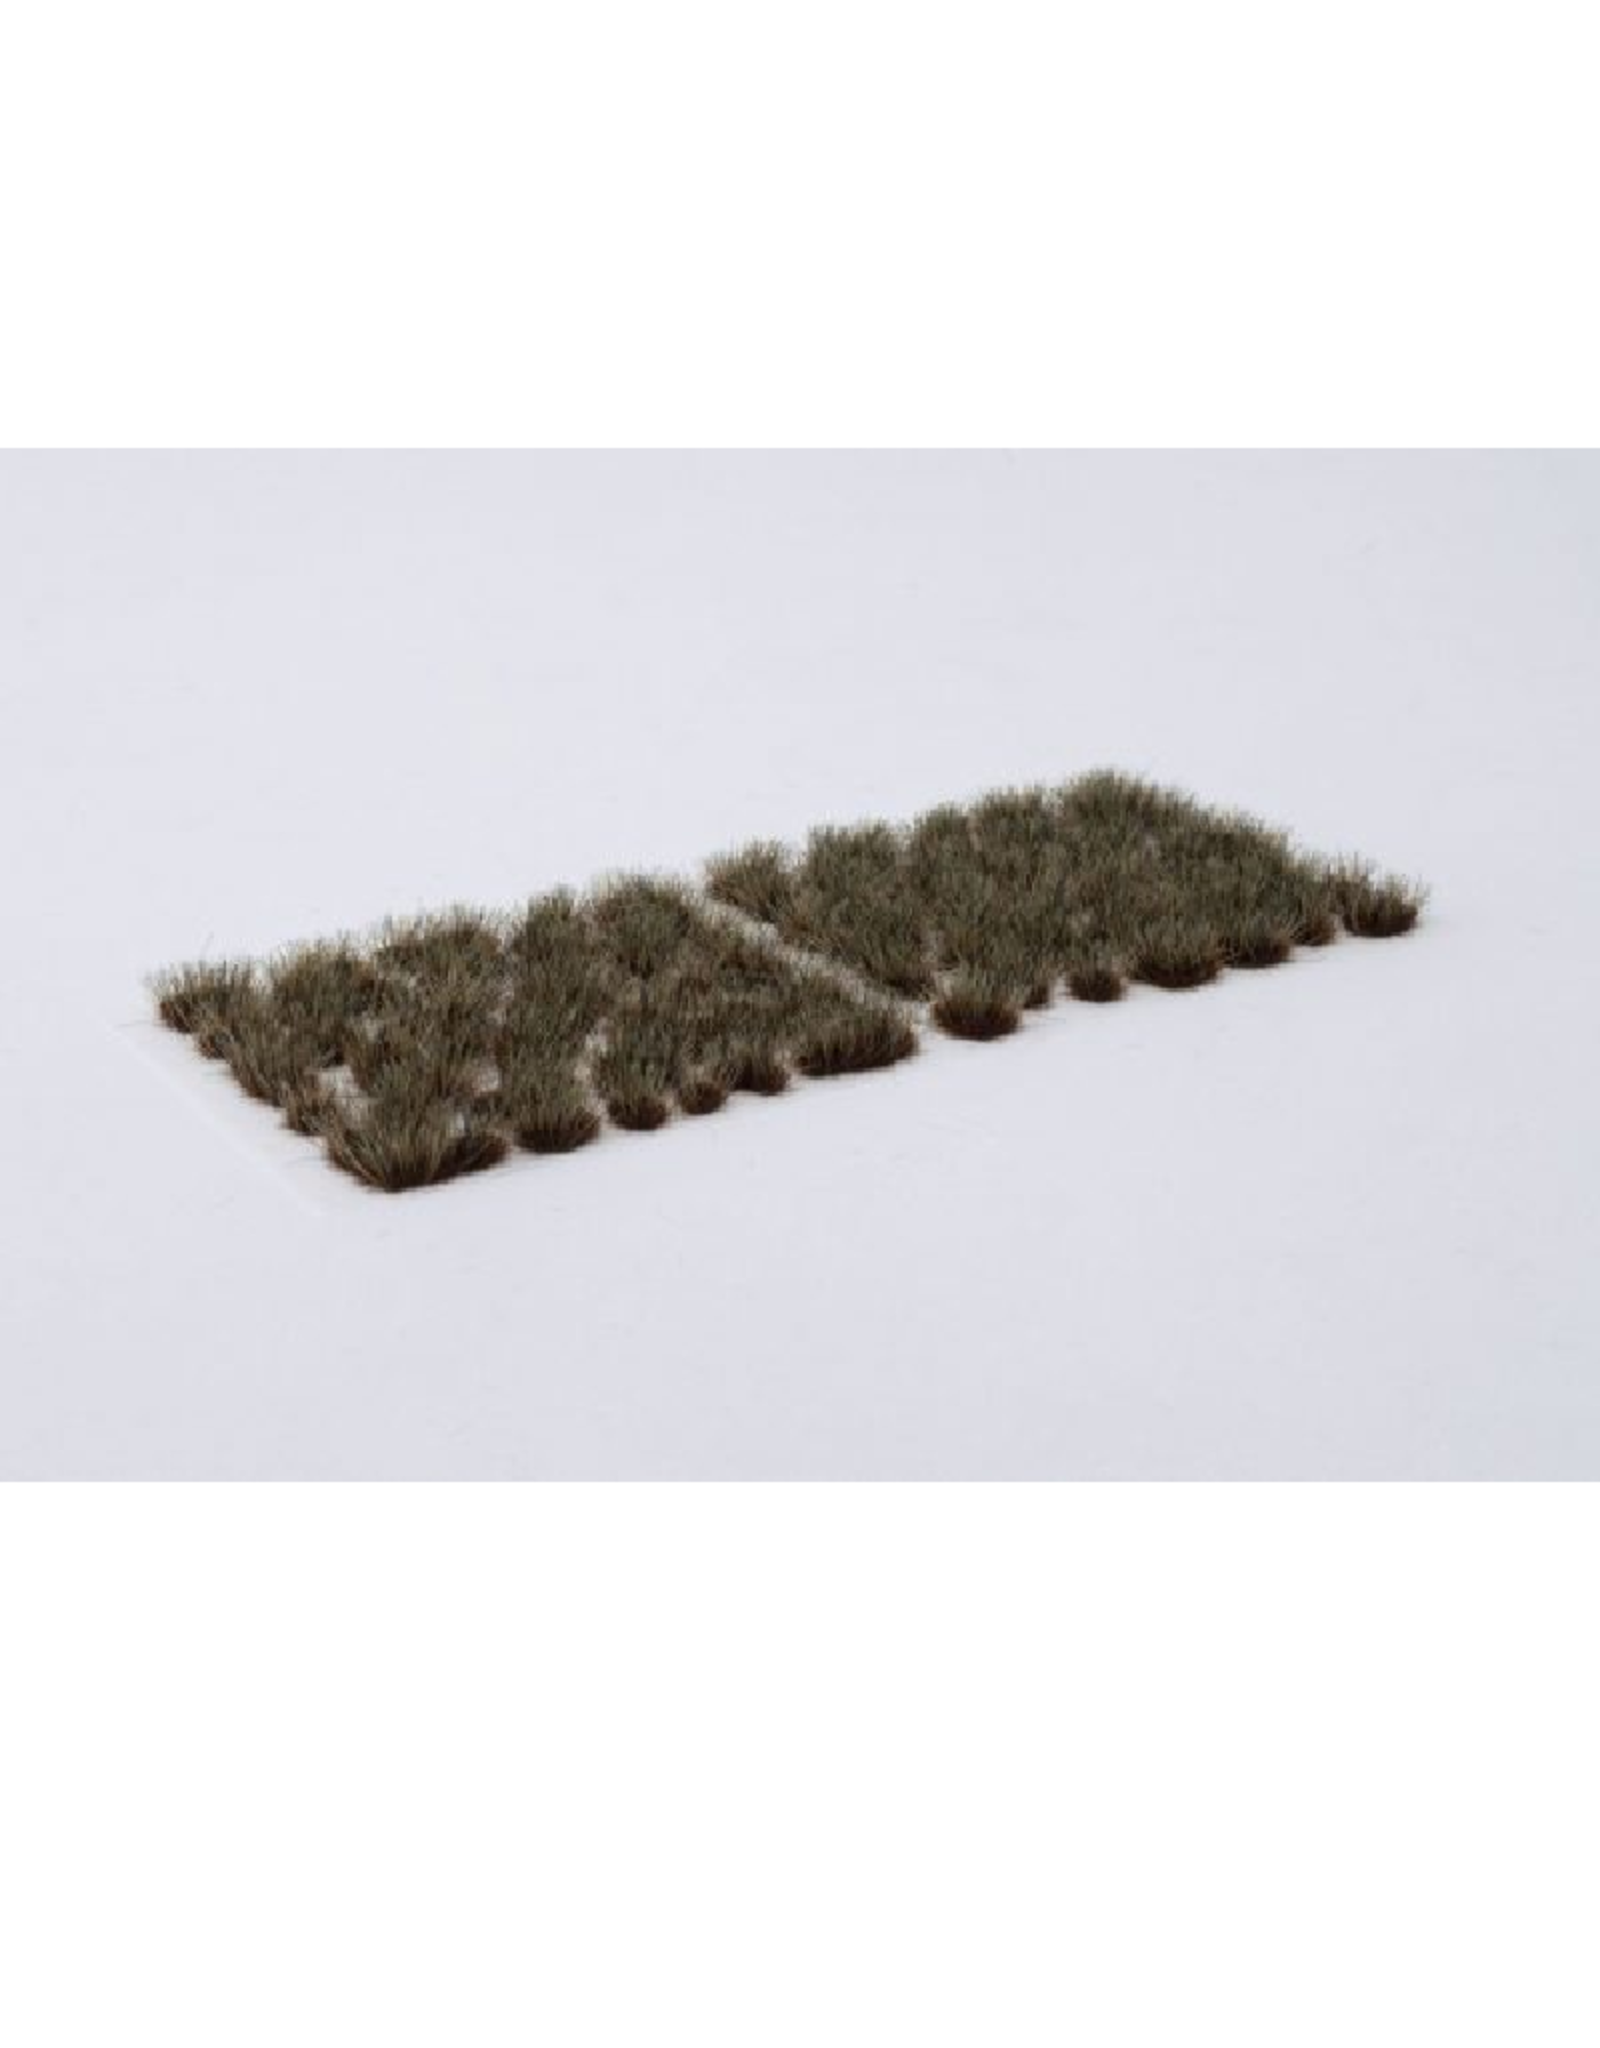 Gamers' Grass Burned tufts (6mm)